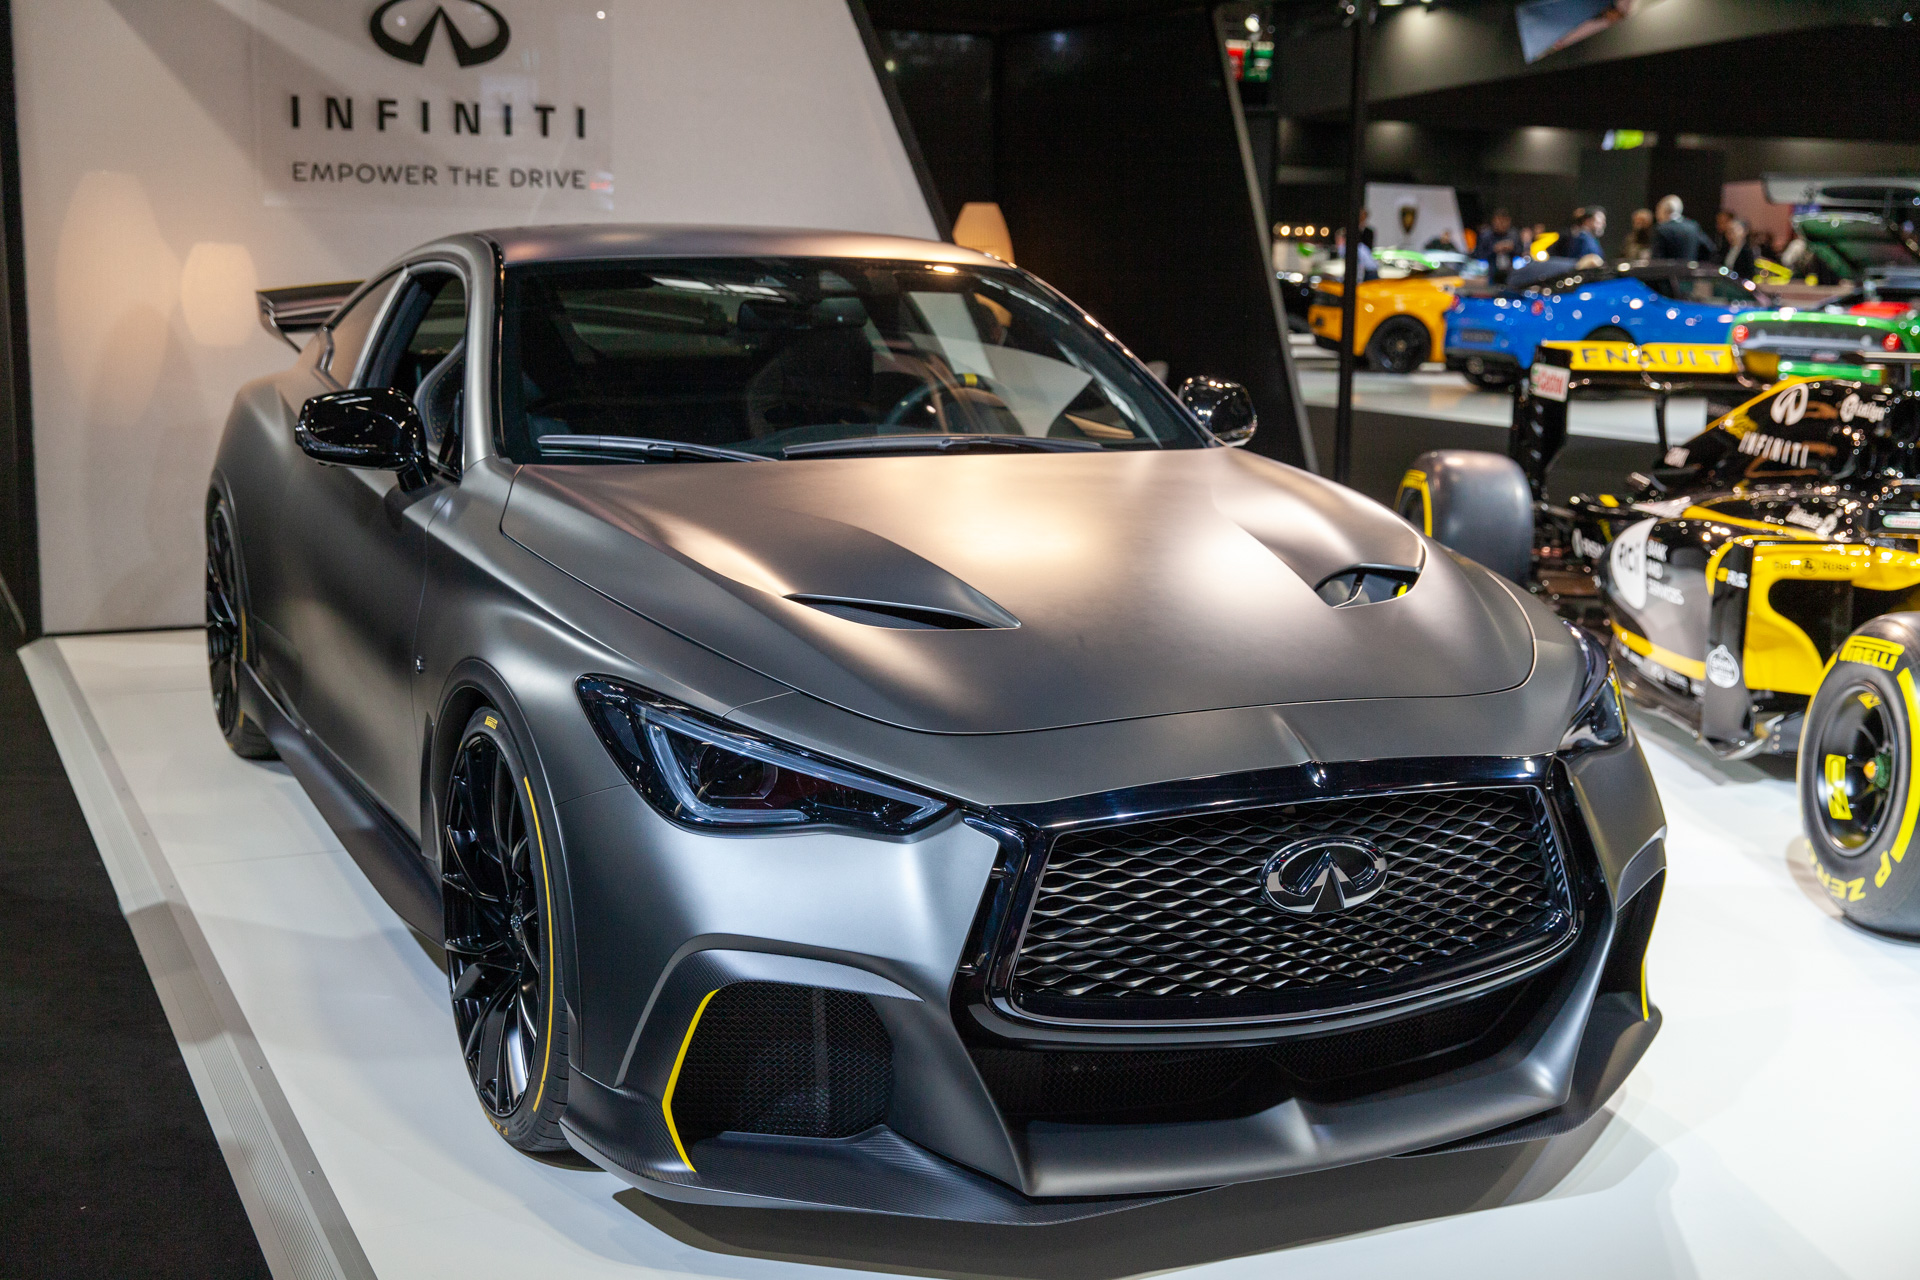 79 All New 2020 Infiniti Q60s Reviews